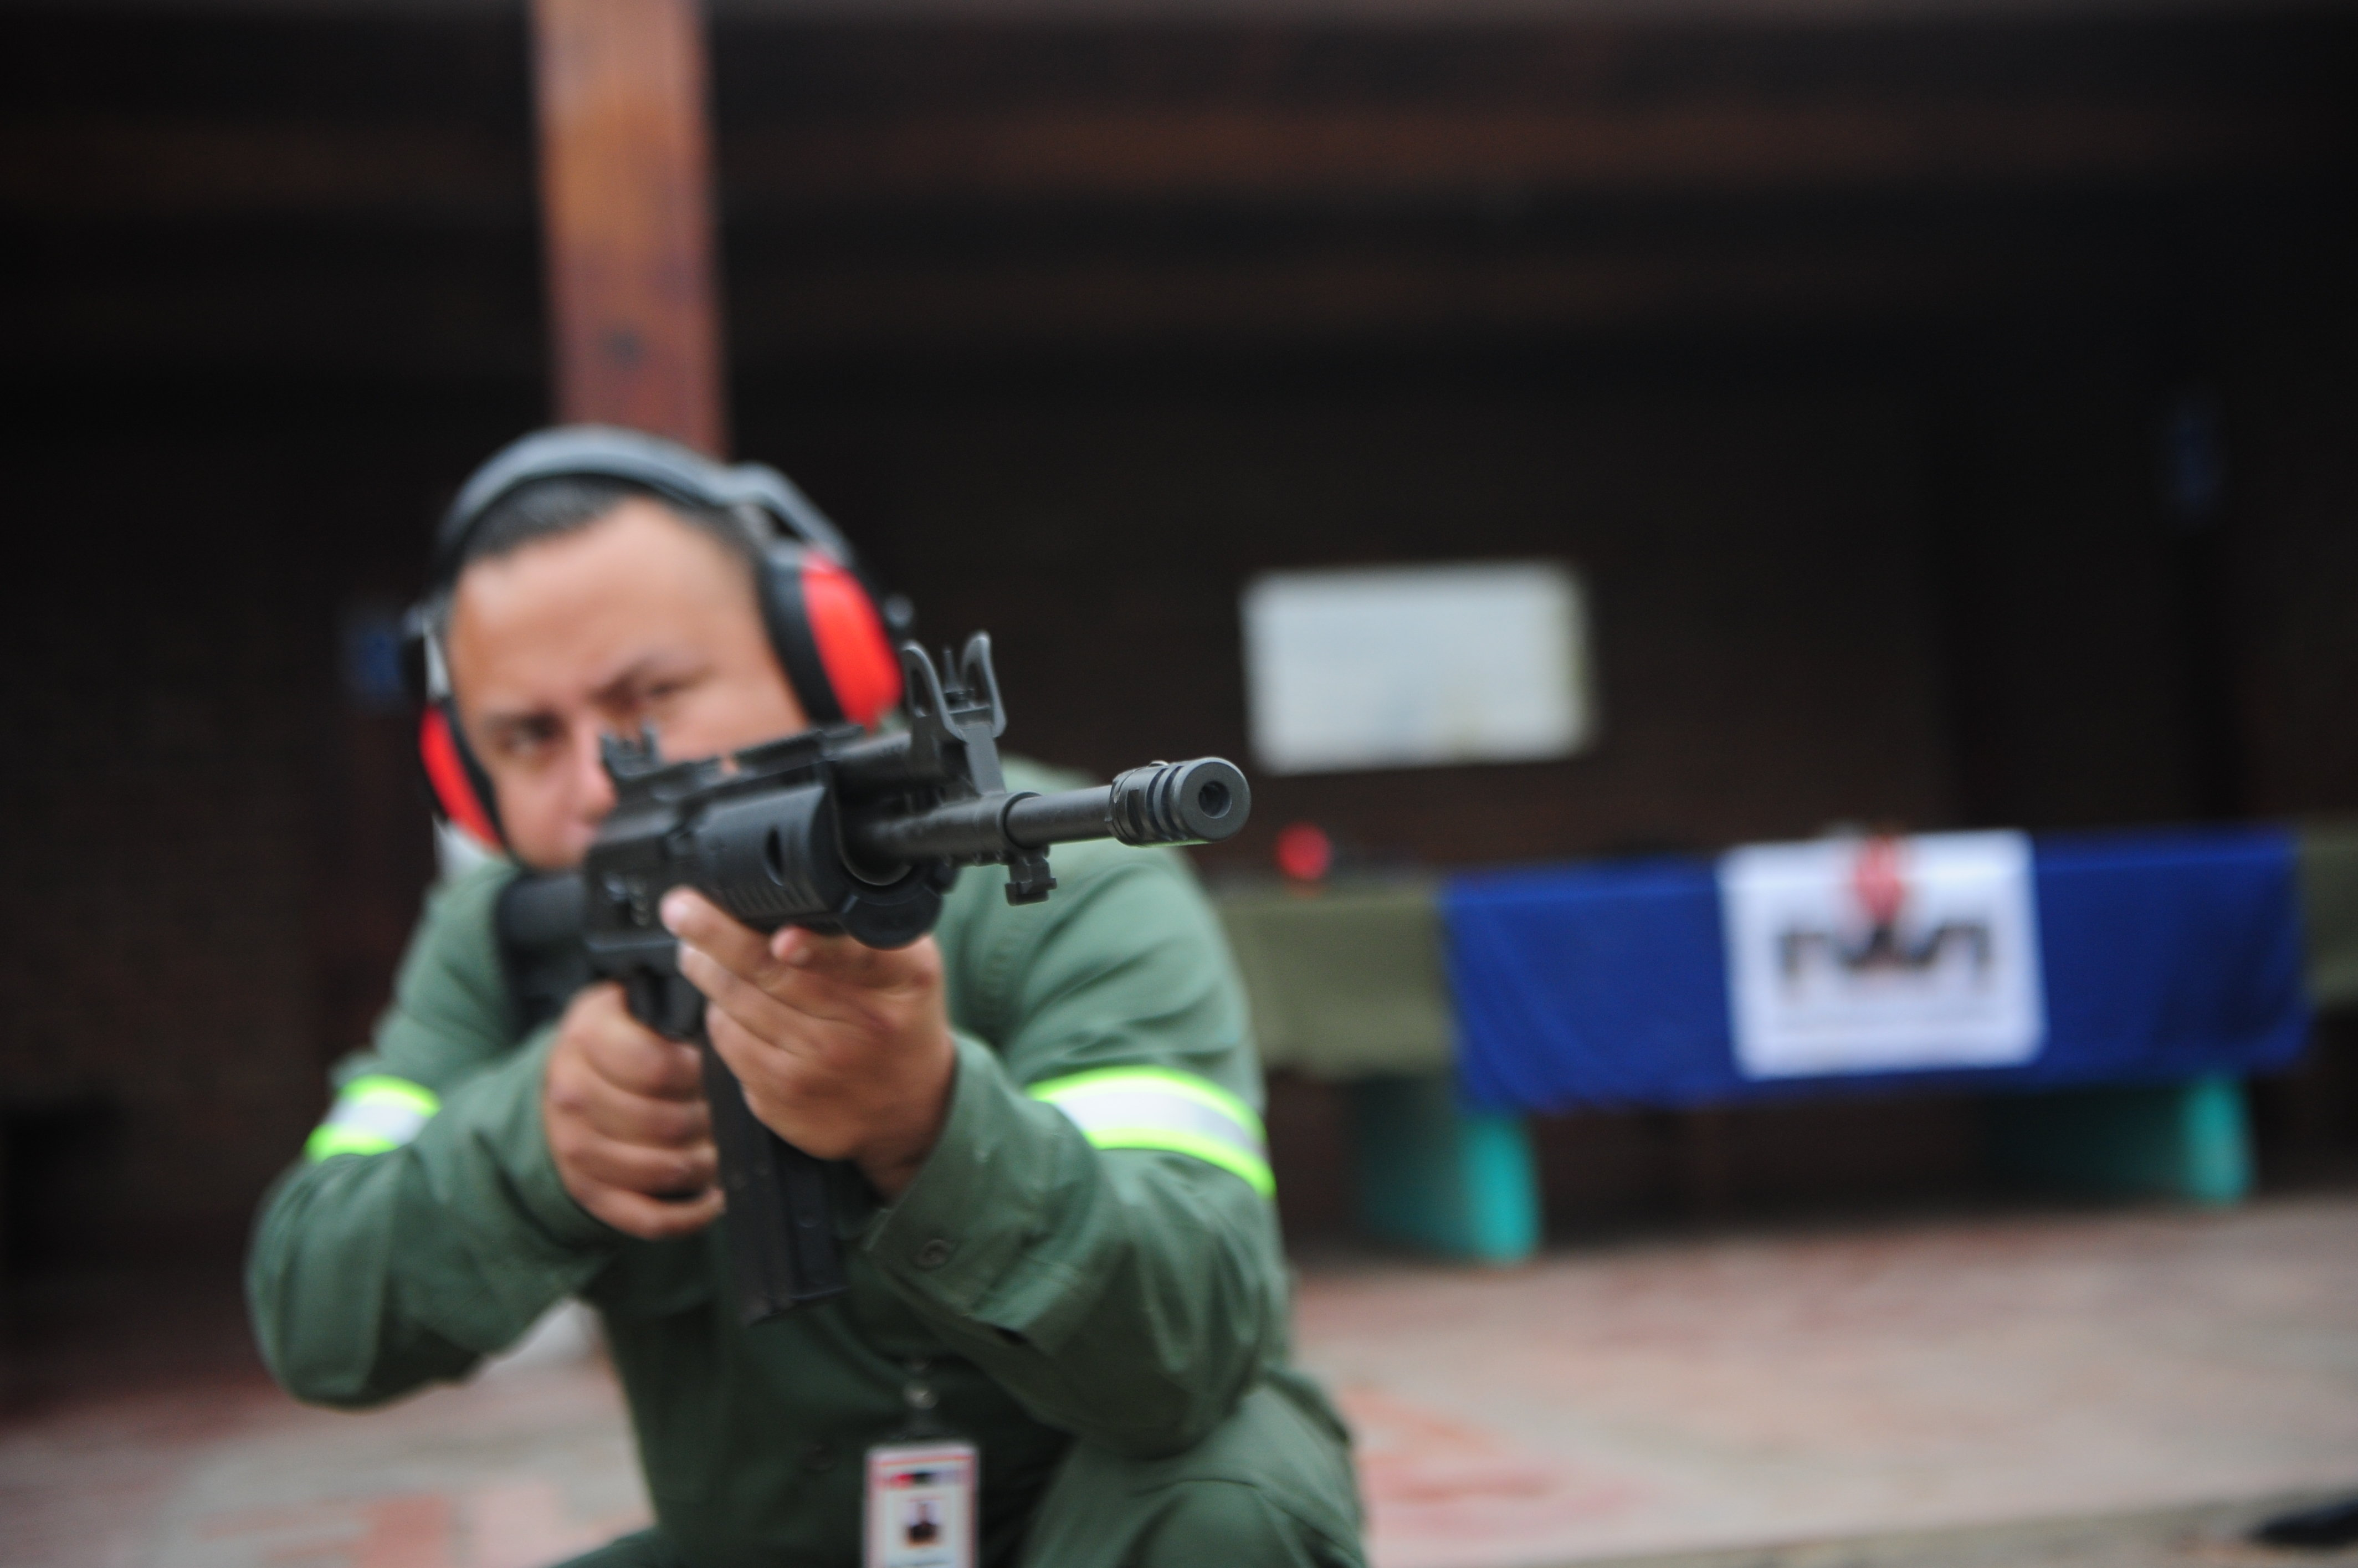 A soldier prepares to fire a Galil assault rifle at the FAME base (Army Factory of weapons and munitions of the Peruvian Army) in Lima on October 12, 2011